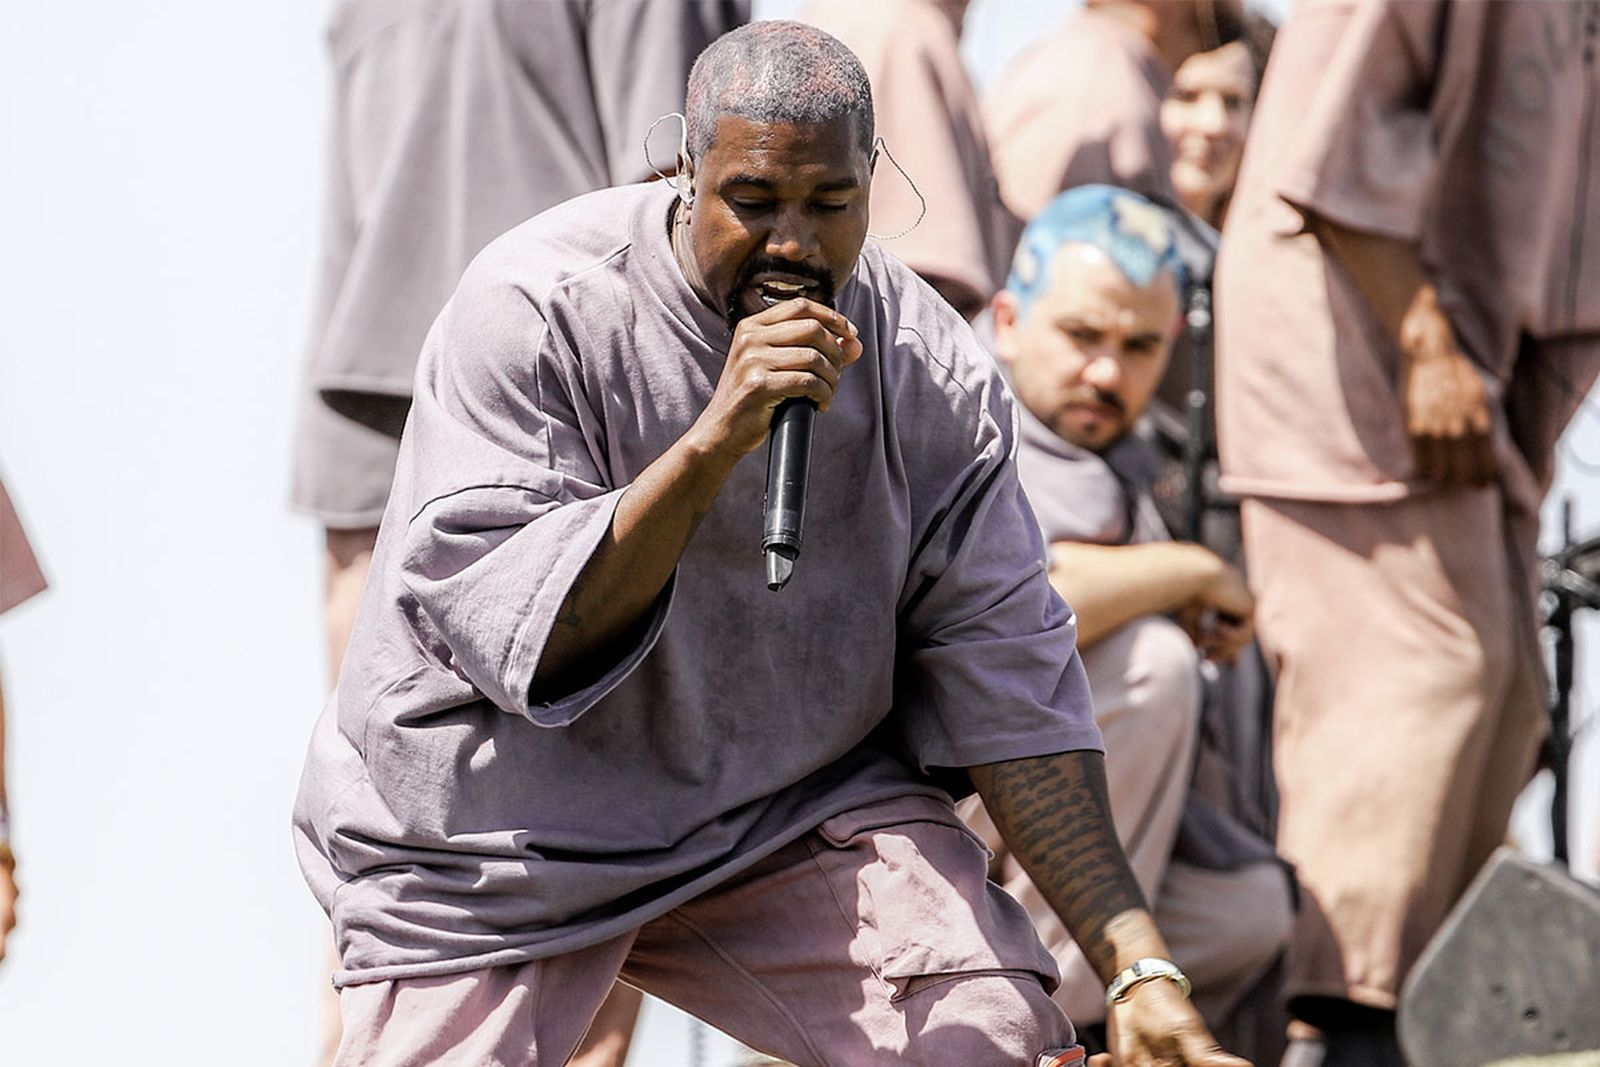 kanye west jesus king release date tracklist Salt Lake City sunday service 'Jesus Is King'